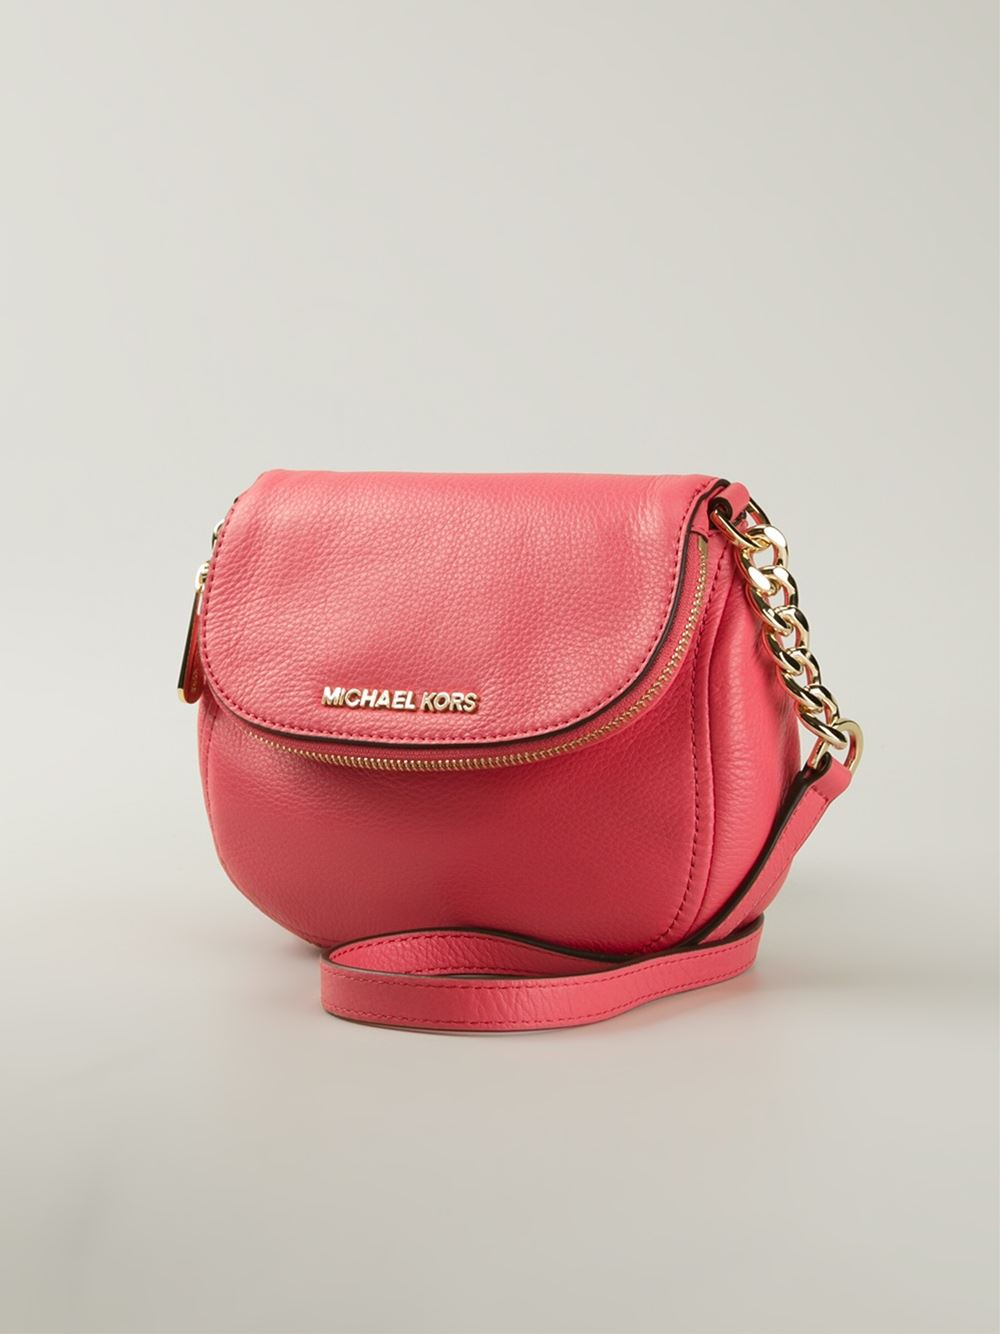 2e472a0b87c979 MICHAEL Michael Kors Bedford Leather Cross-Body Bag in Red - Lyst